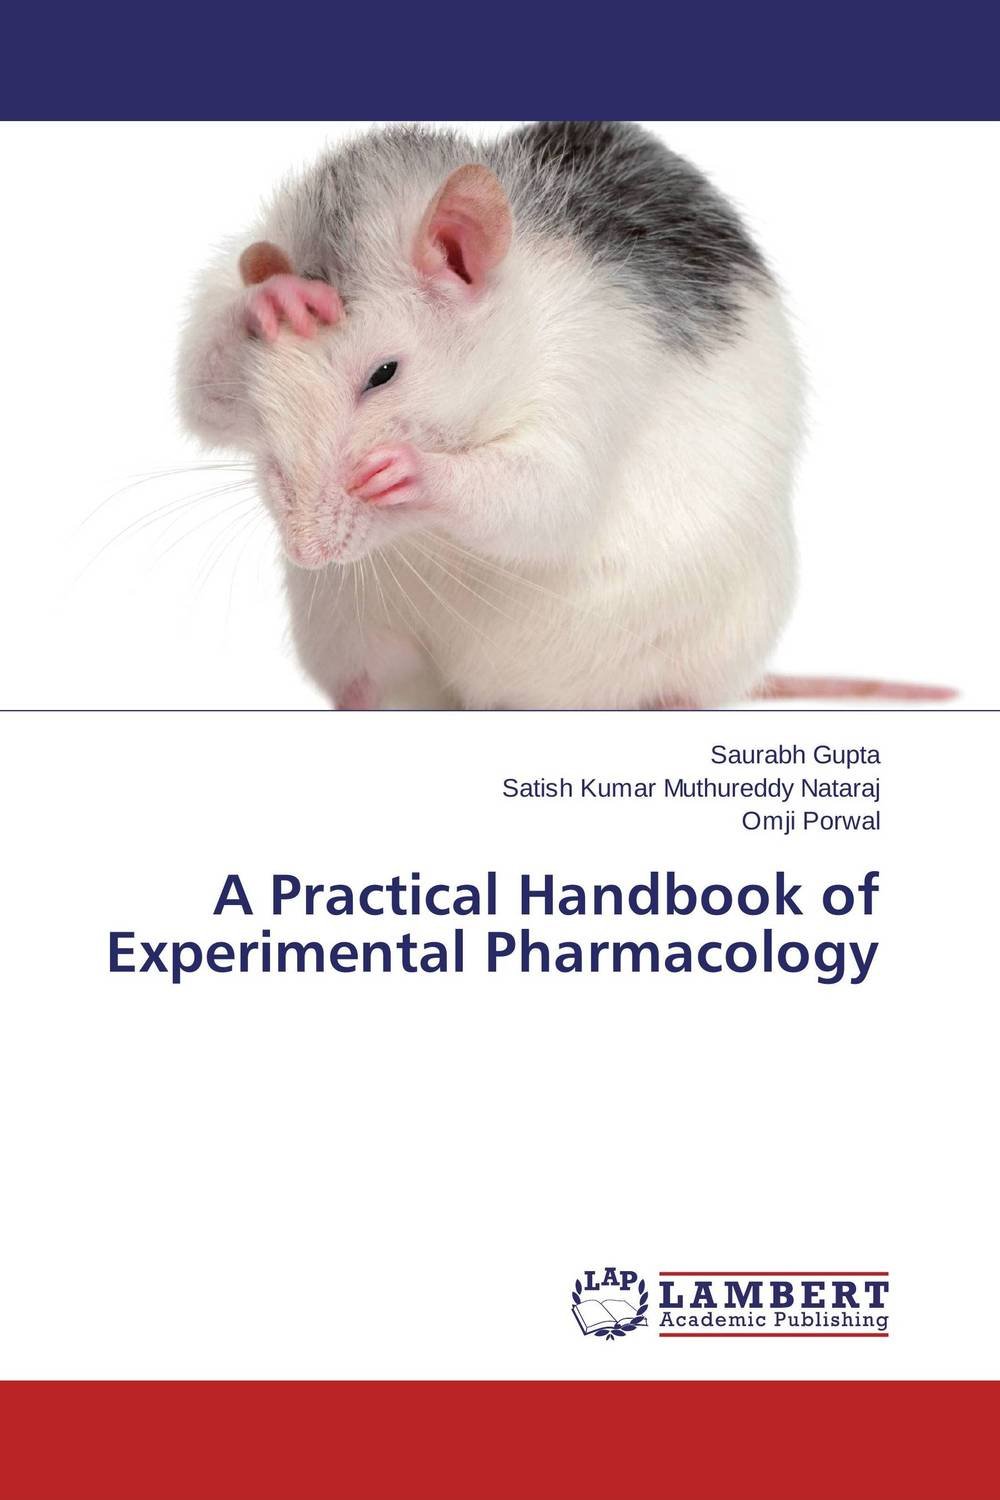 A Practical Handbook of Experimental Pharmacology handbook of the exhibition of napier relics and of books instruments and devices for facilitating calculation